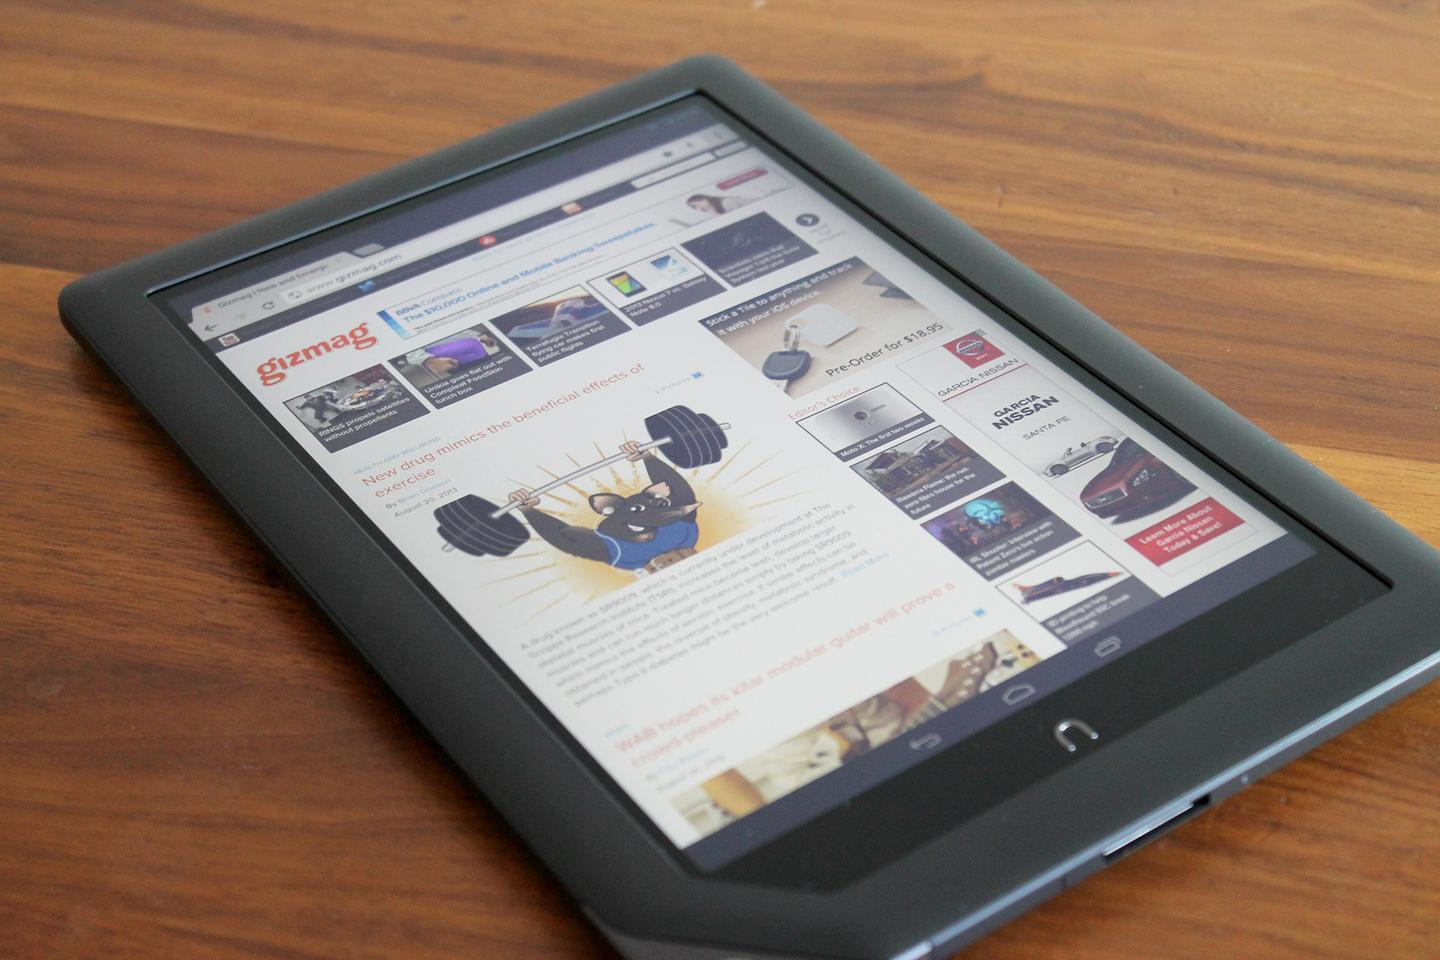 Barnes & Noble did a bit of flip-flopping today, saying it will continue making tablets like the Nook HD+ (above) after all